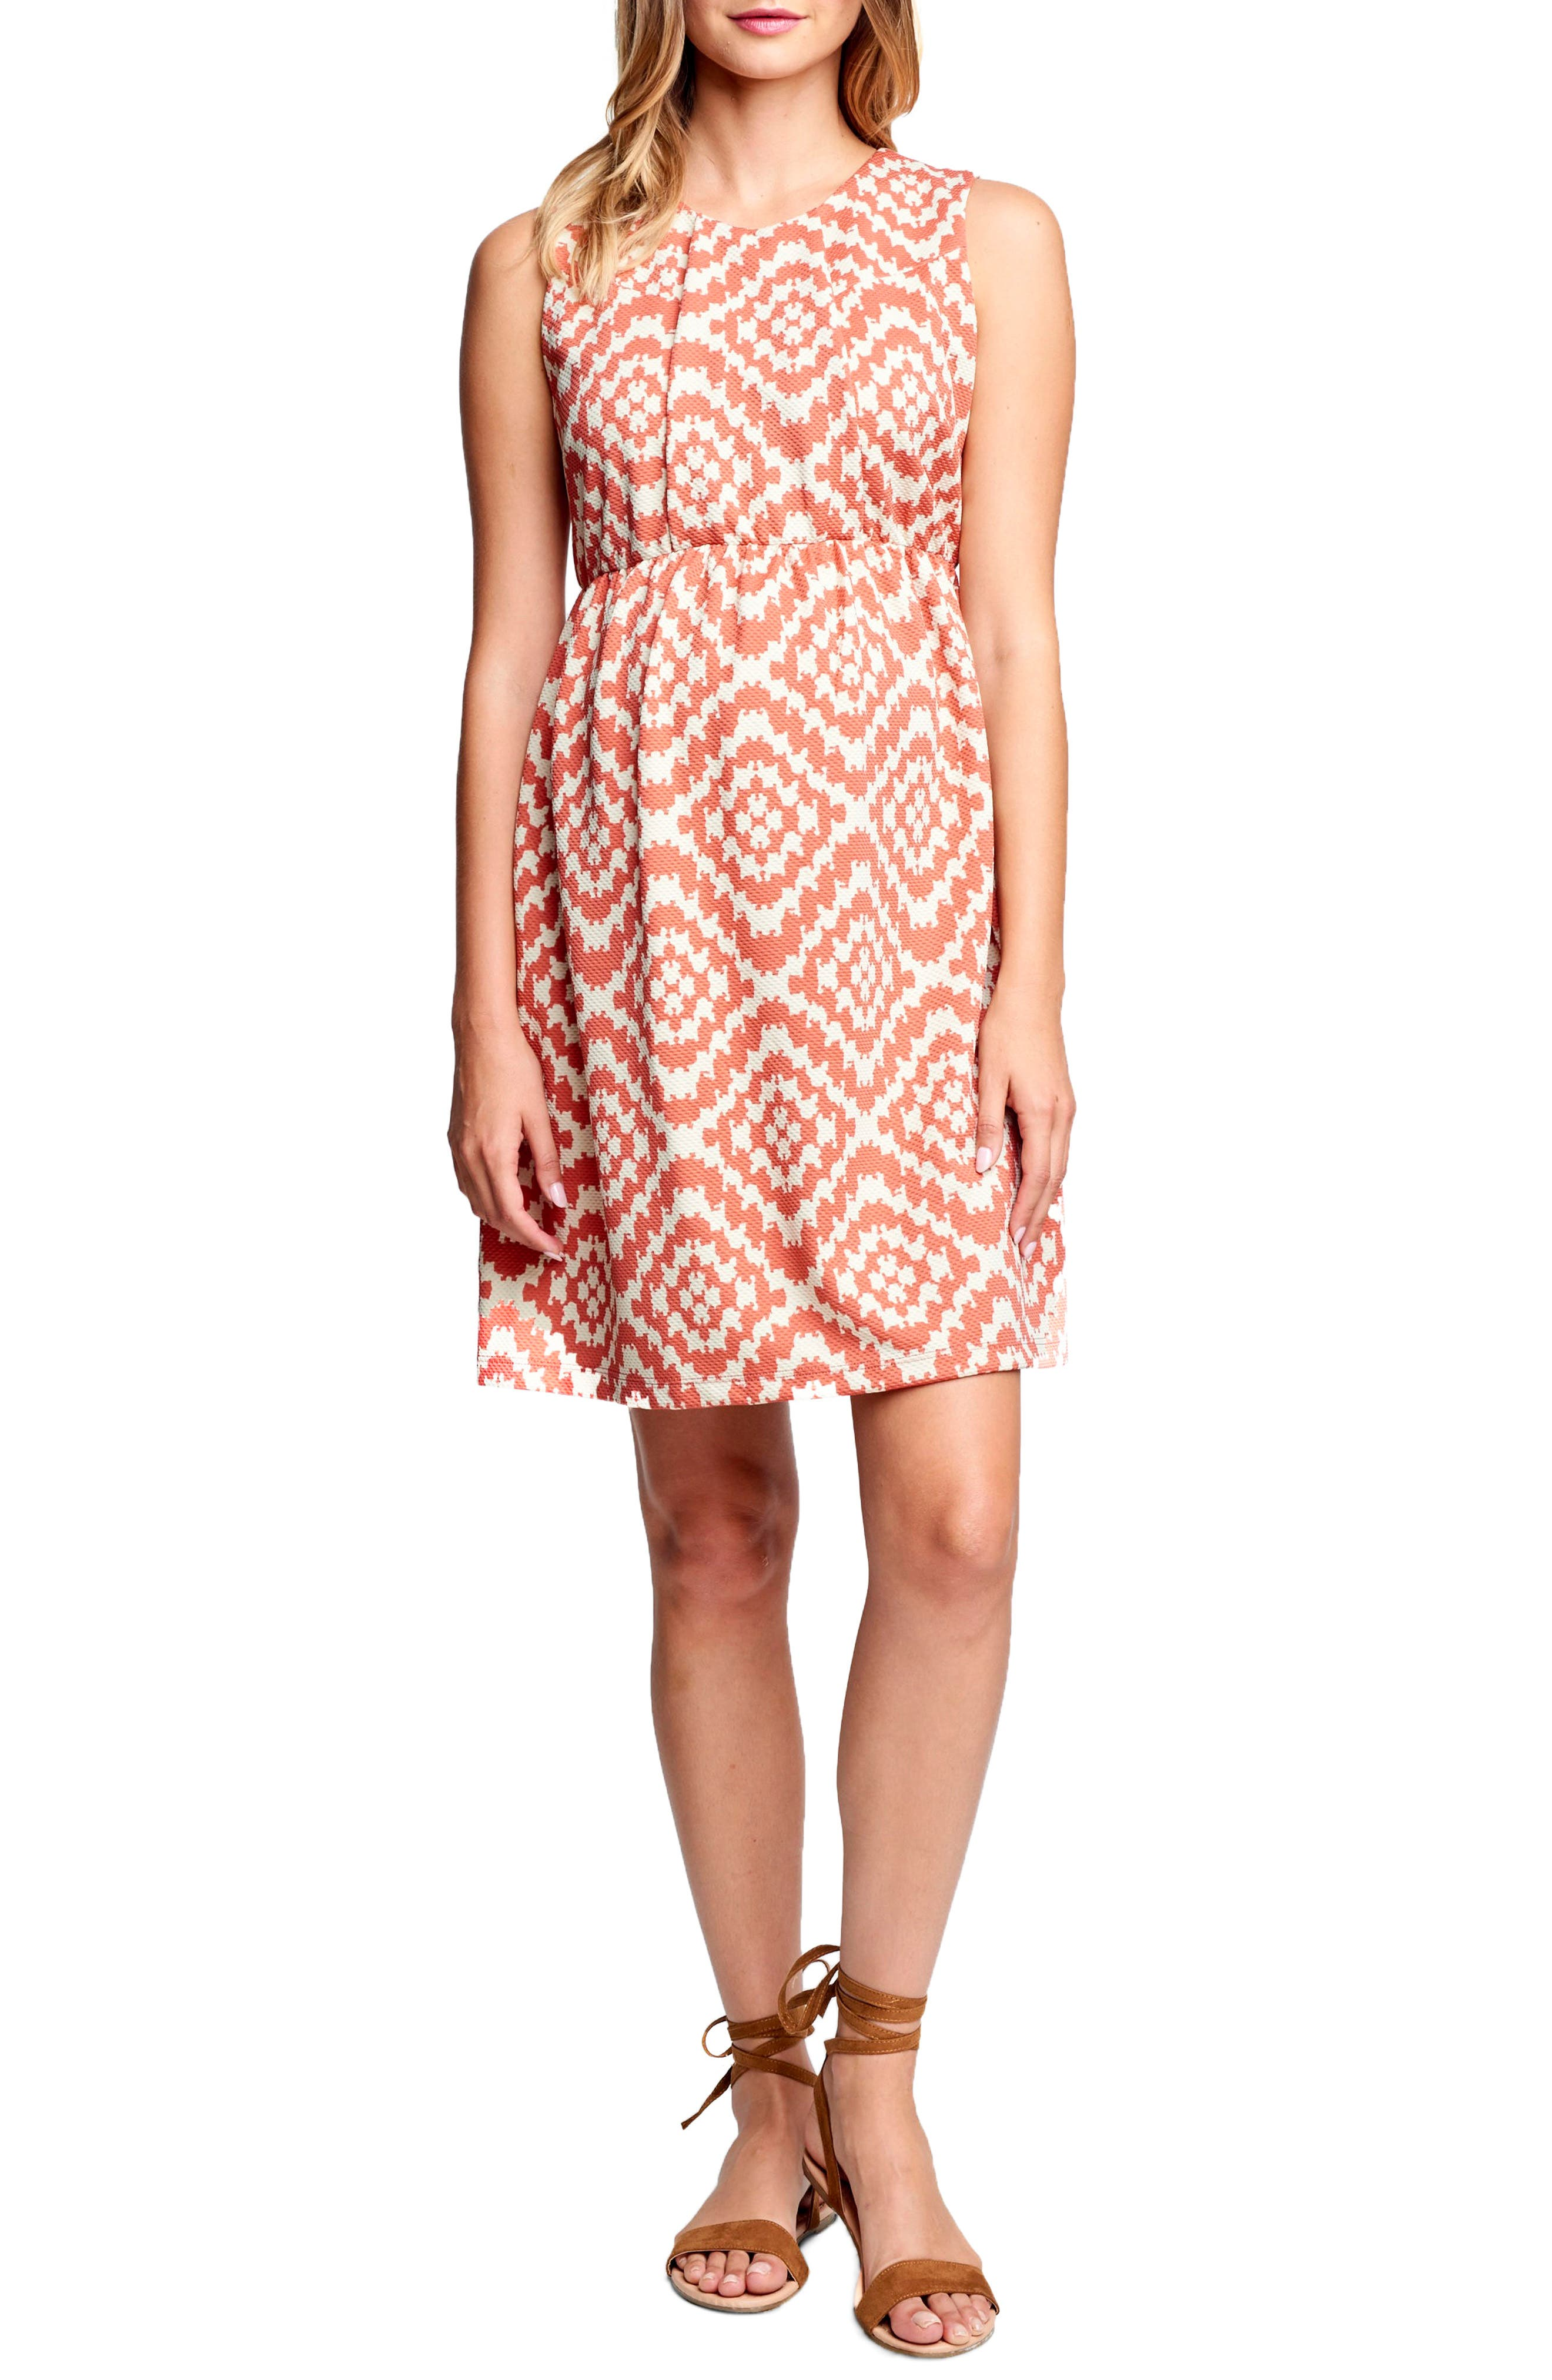 MATERNAL AMERICA 'Vintage' Textured Maternity Dress, Main, color, APRICOT TAPESTRY